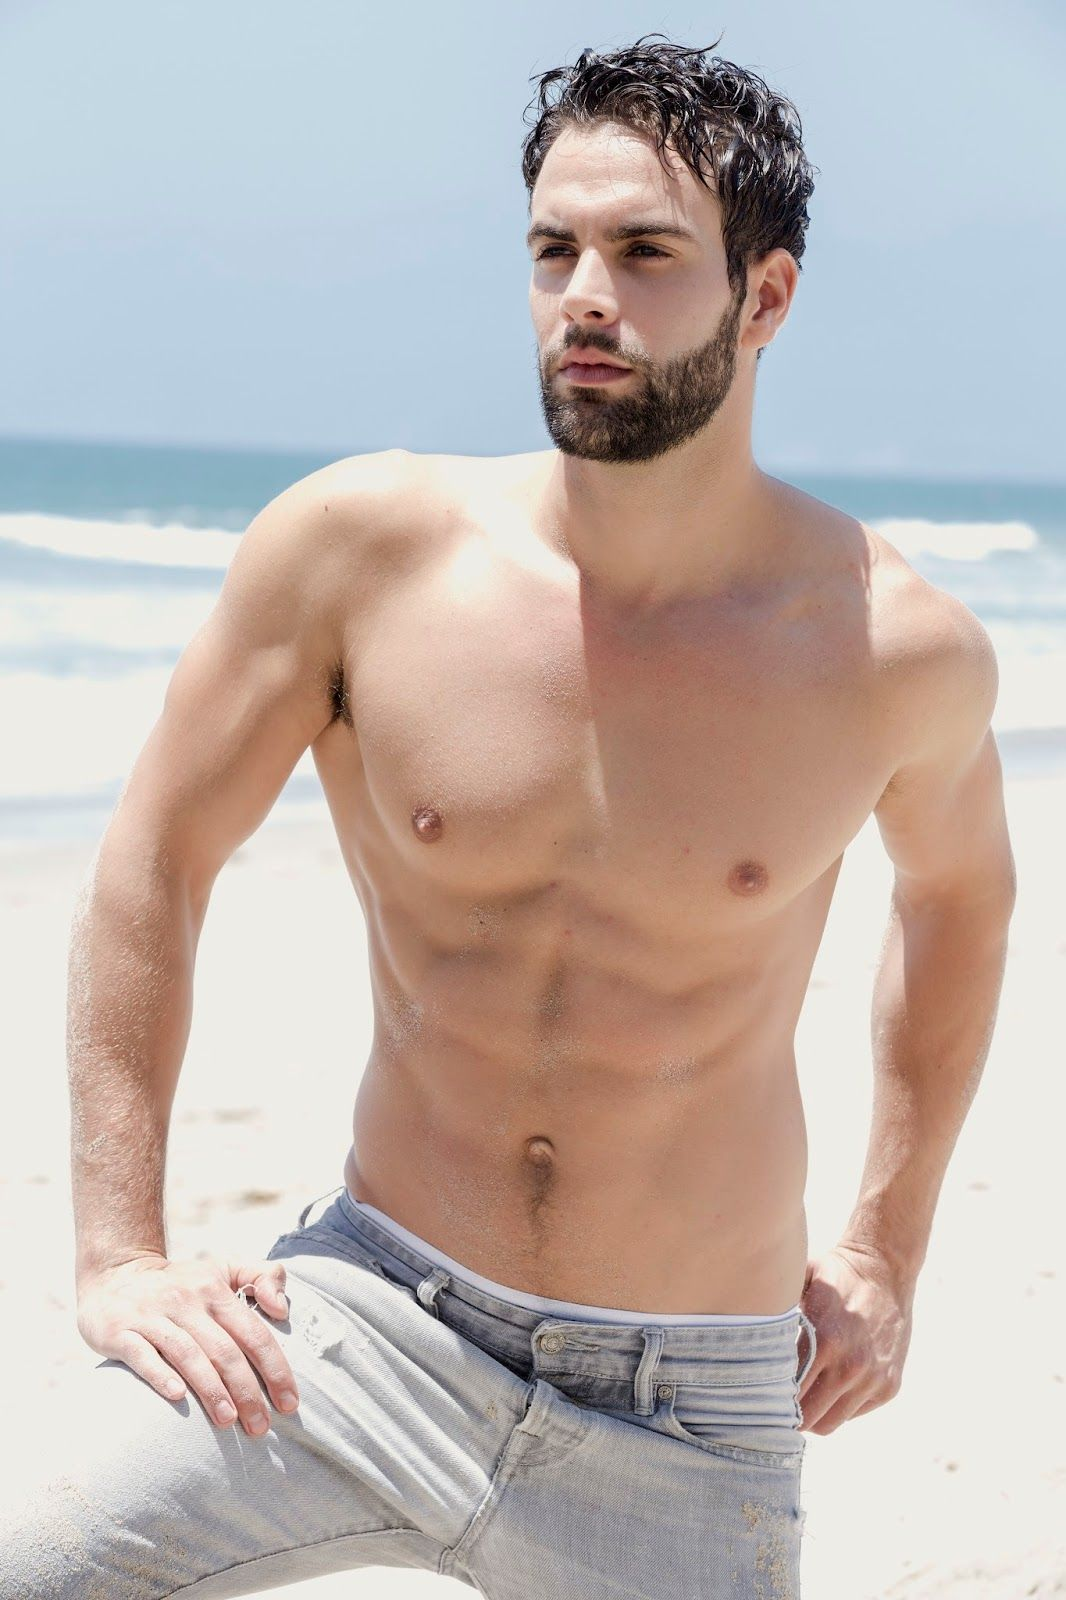 George serfes by brady cook oh yes i am favorite models pinterest sexy guys hot guys - Simon porte jacquemus gay ...